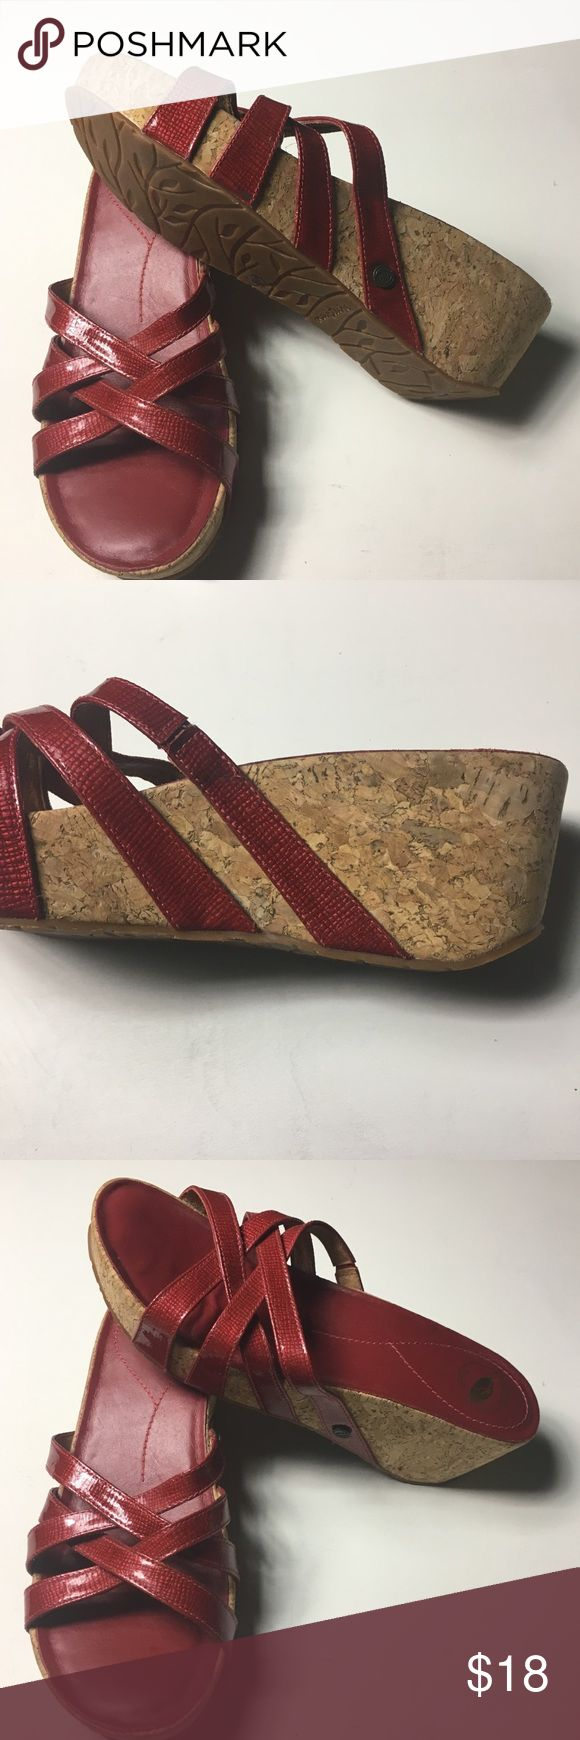 "Nurture Red 8 M Leather Sandals New without box.  Very stylish leather uppers with faint snakeskin print.  Four straps cross cross the vamp and the heel height from 2 1/2 inches at the heel to 1/2"" at the toe level.  Nurture brand shoes are famous for comfort. nurture Shoes Sandals"